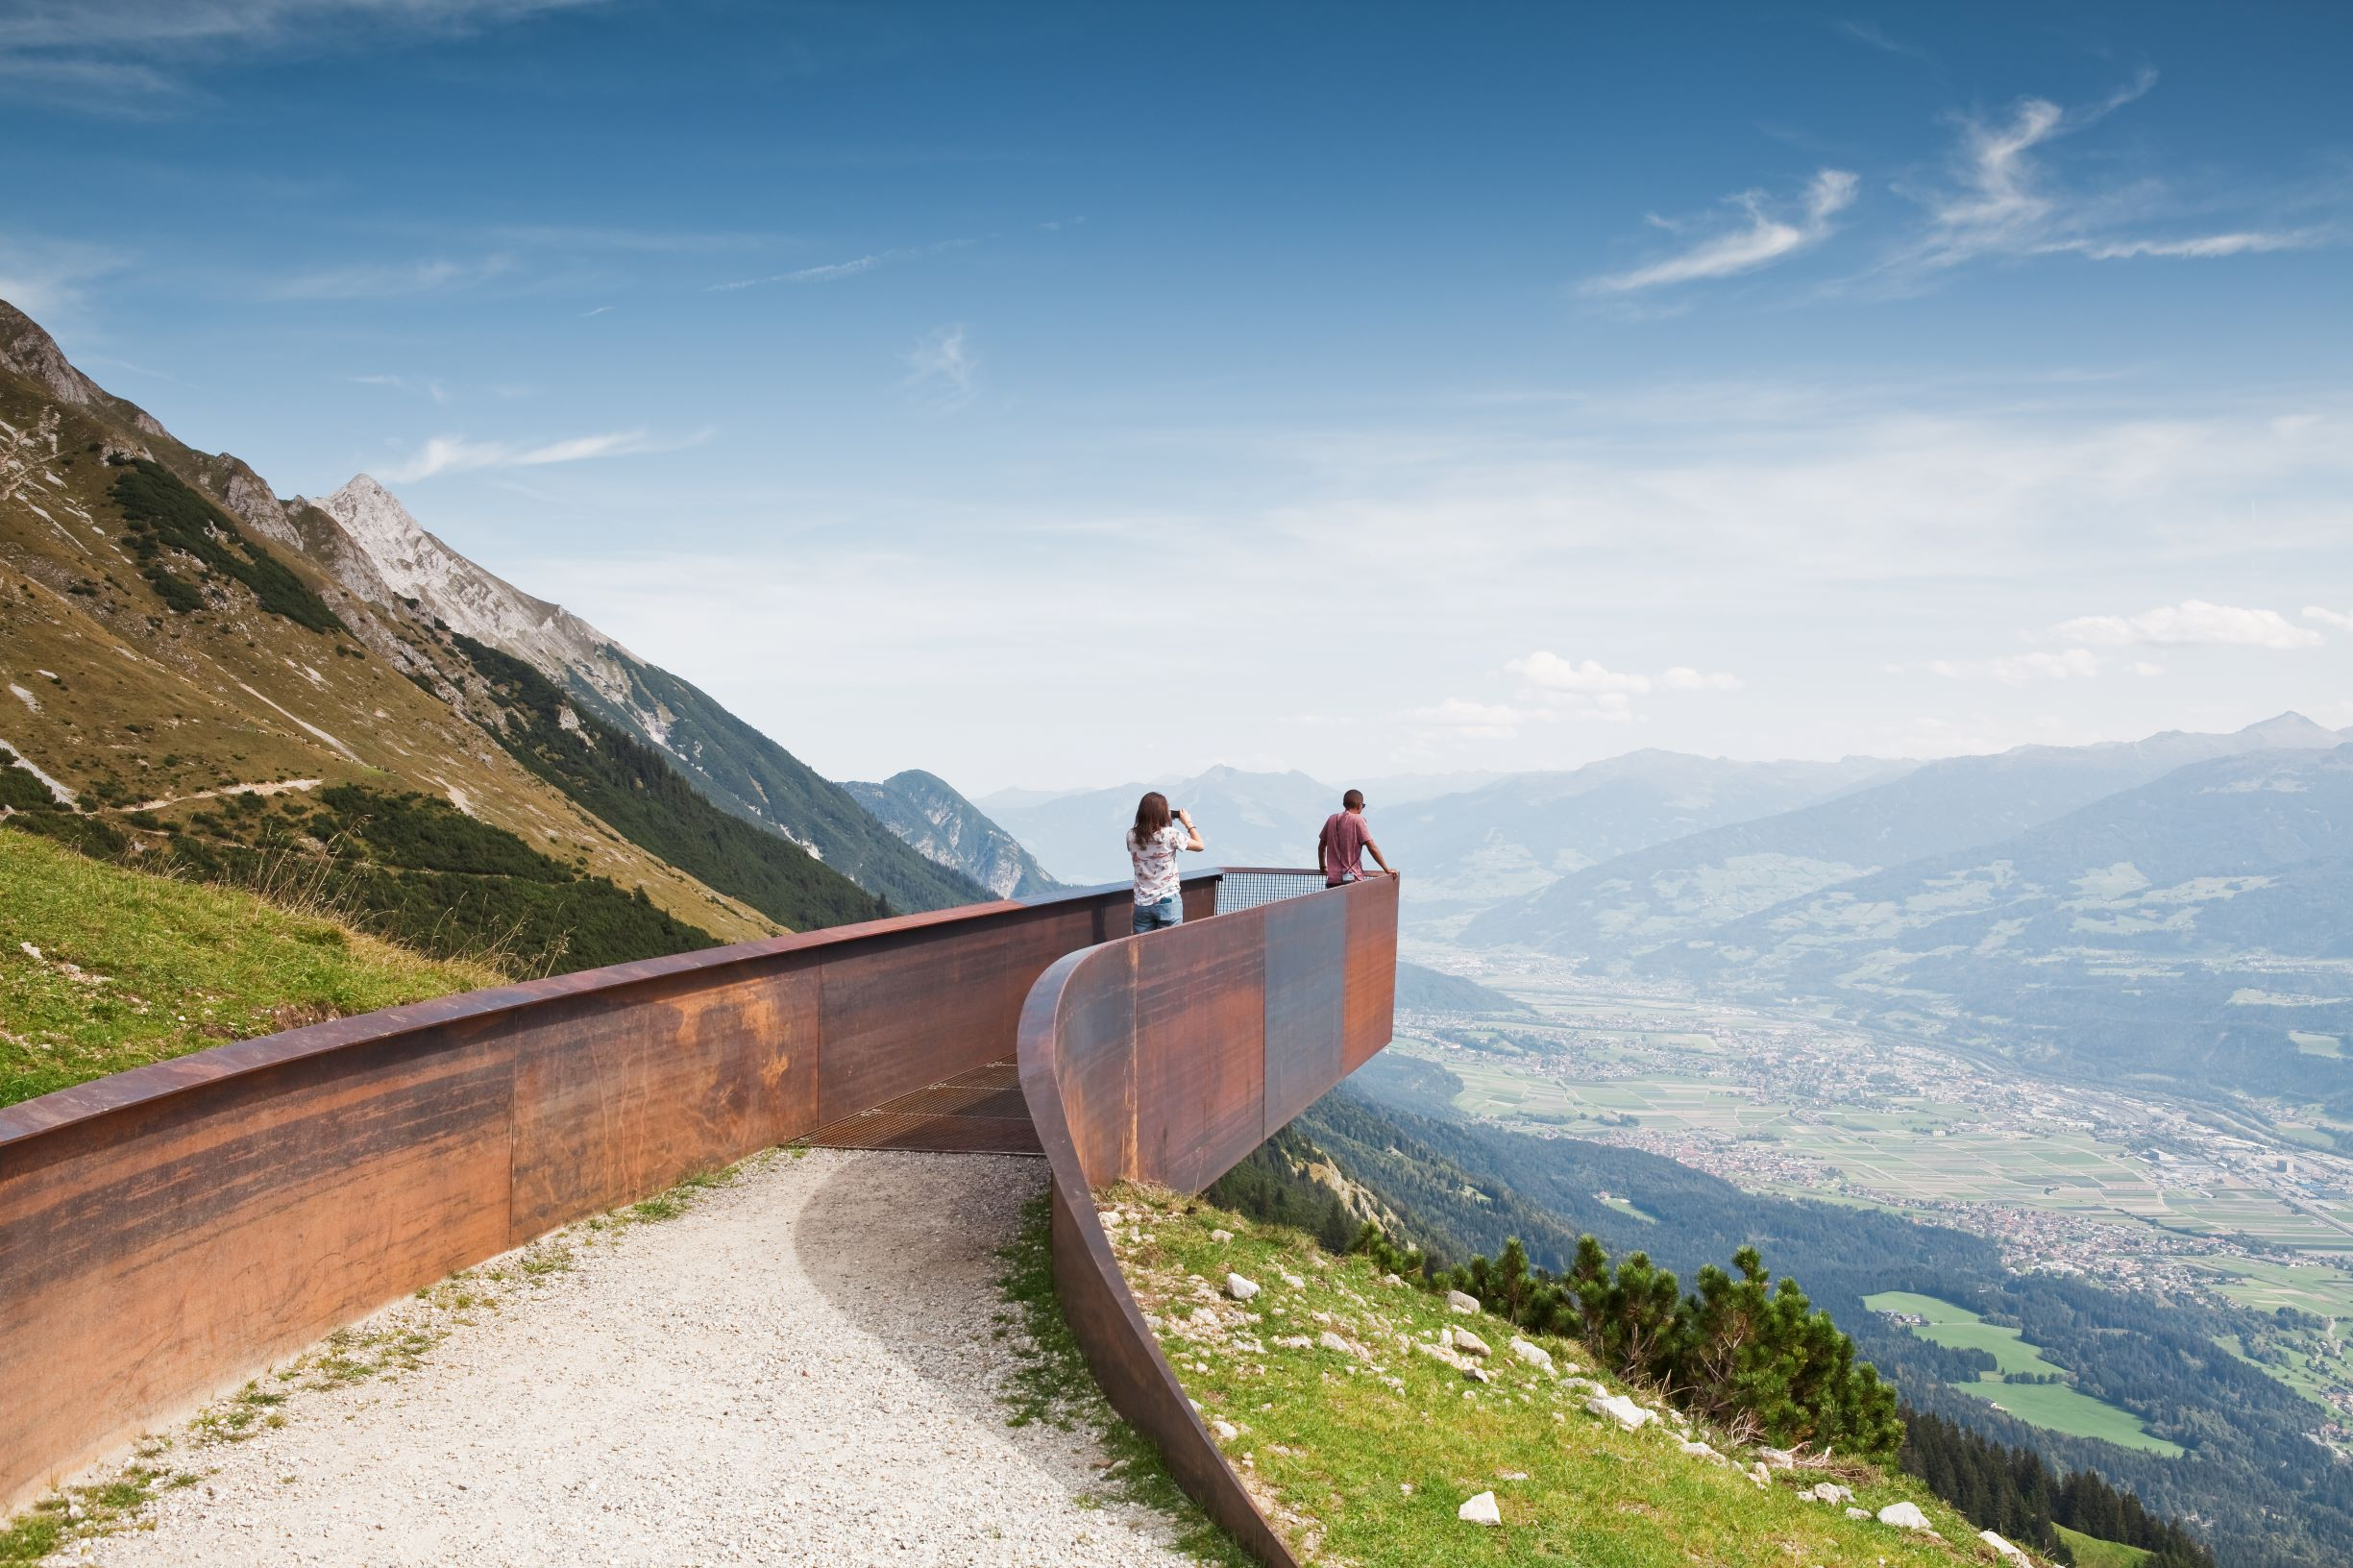 The Path of Perspectives Panorama Trail by Snøhetta. Photograph by Christian Flatscher